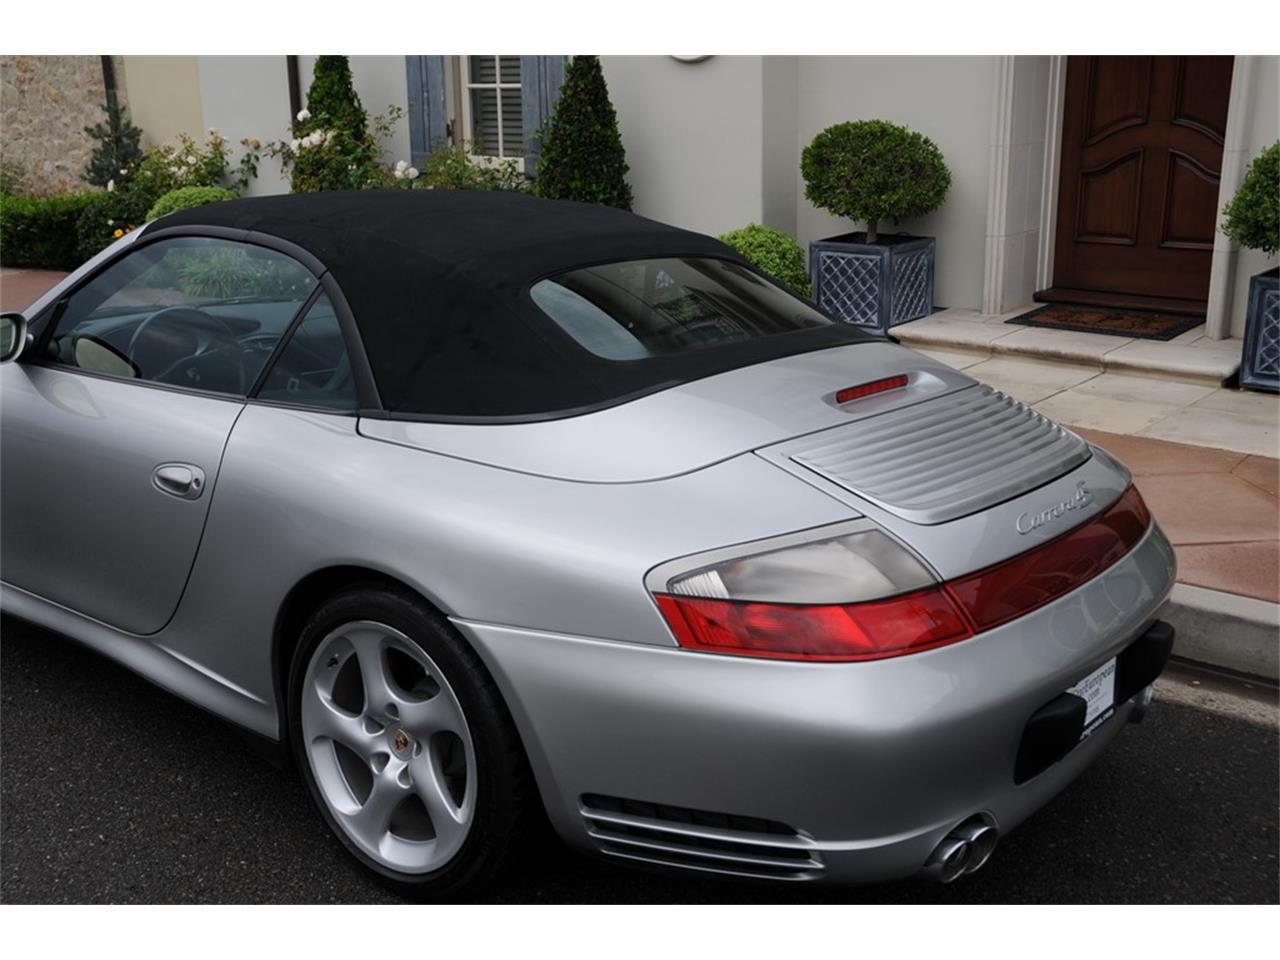 Large Picture of '04 911 Carrera 4S Cabriolet located in Costa Mesa California - QK9K